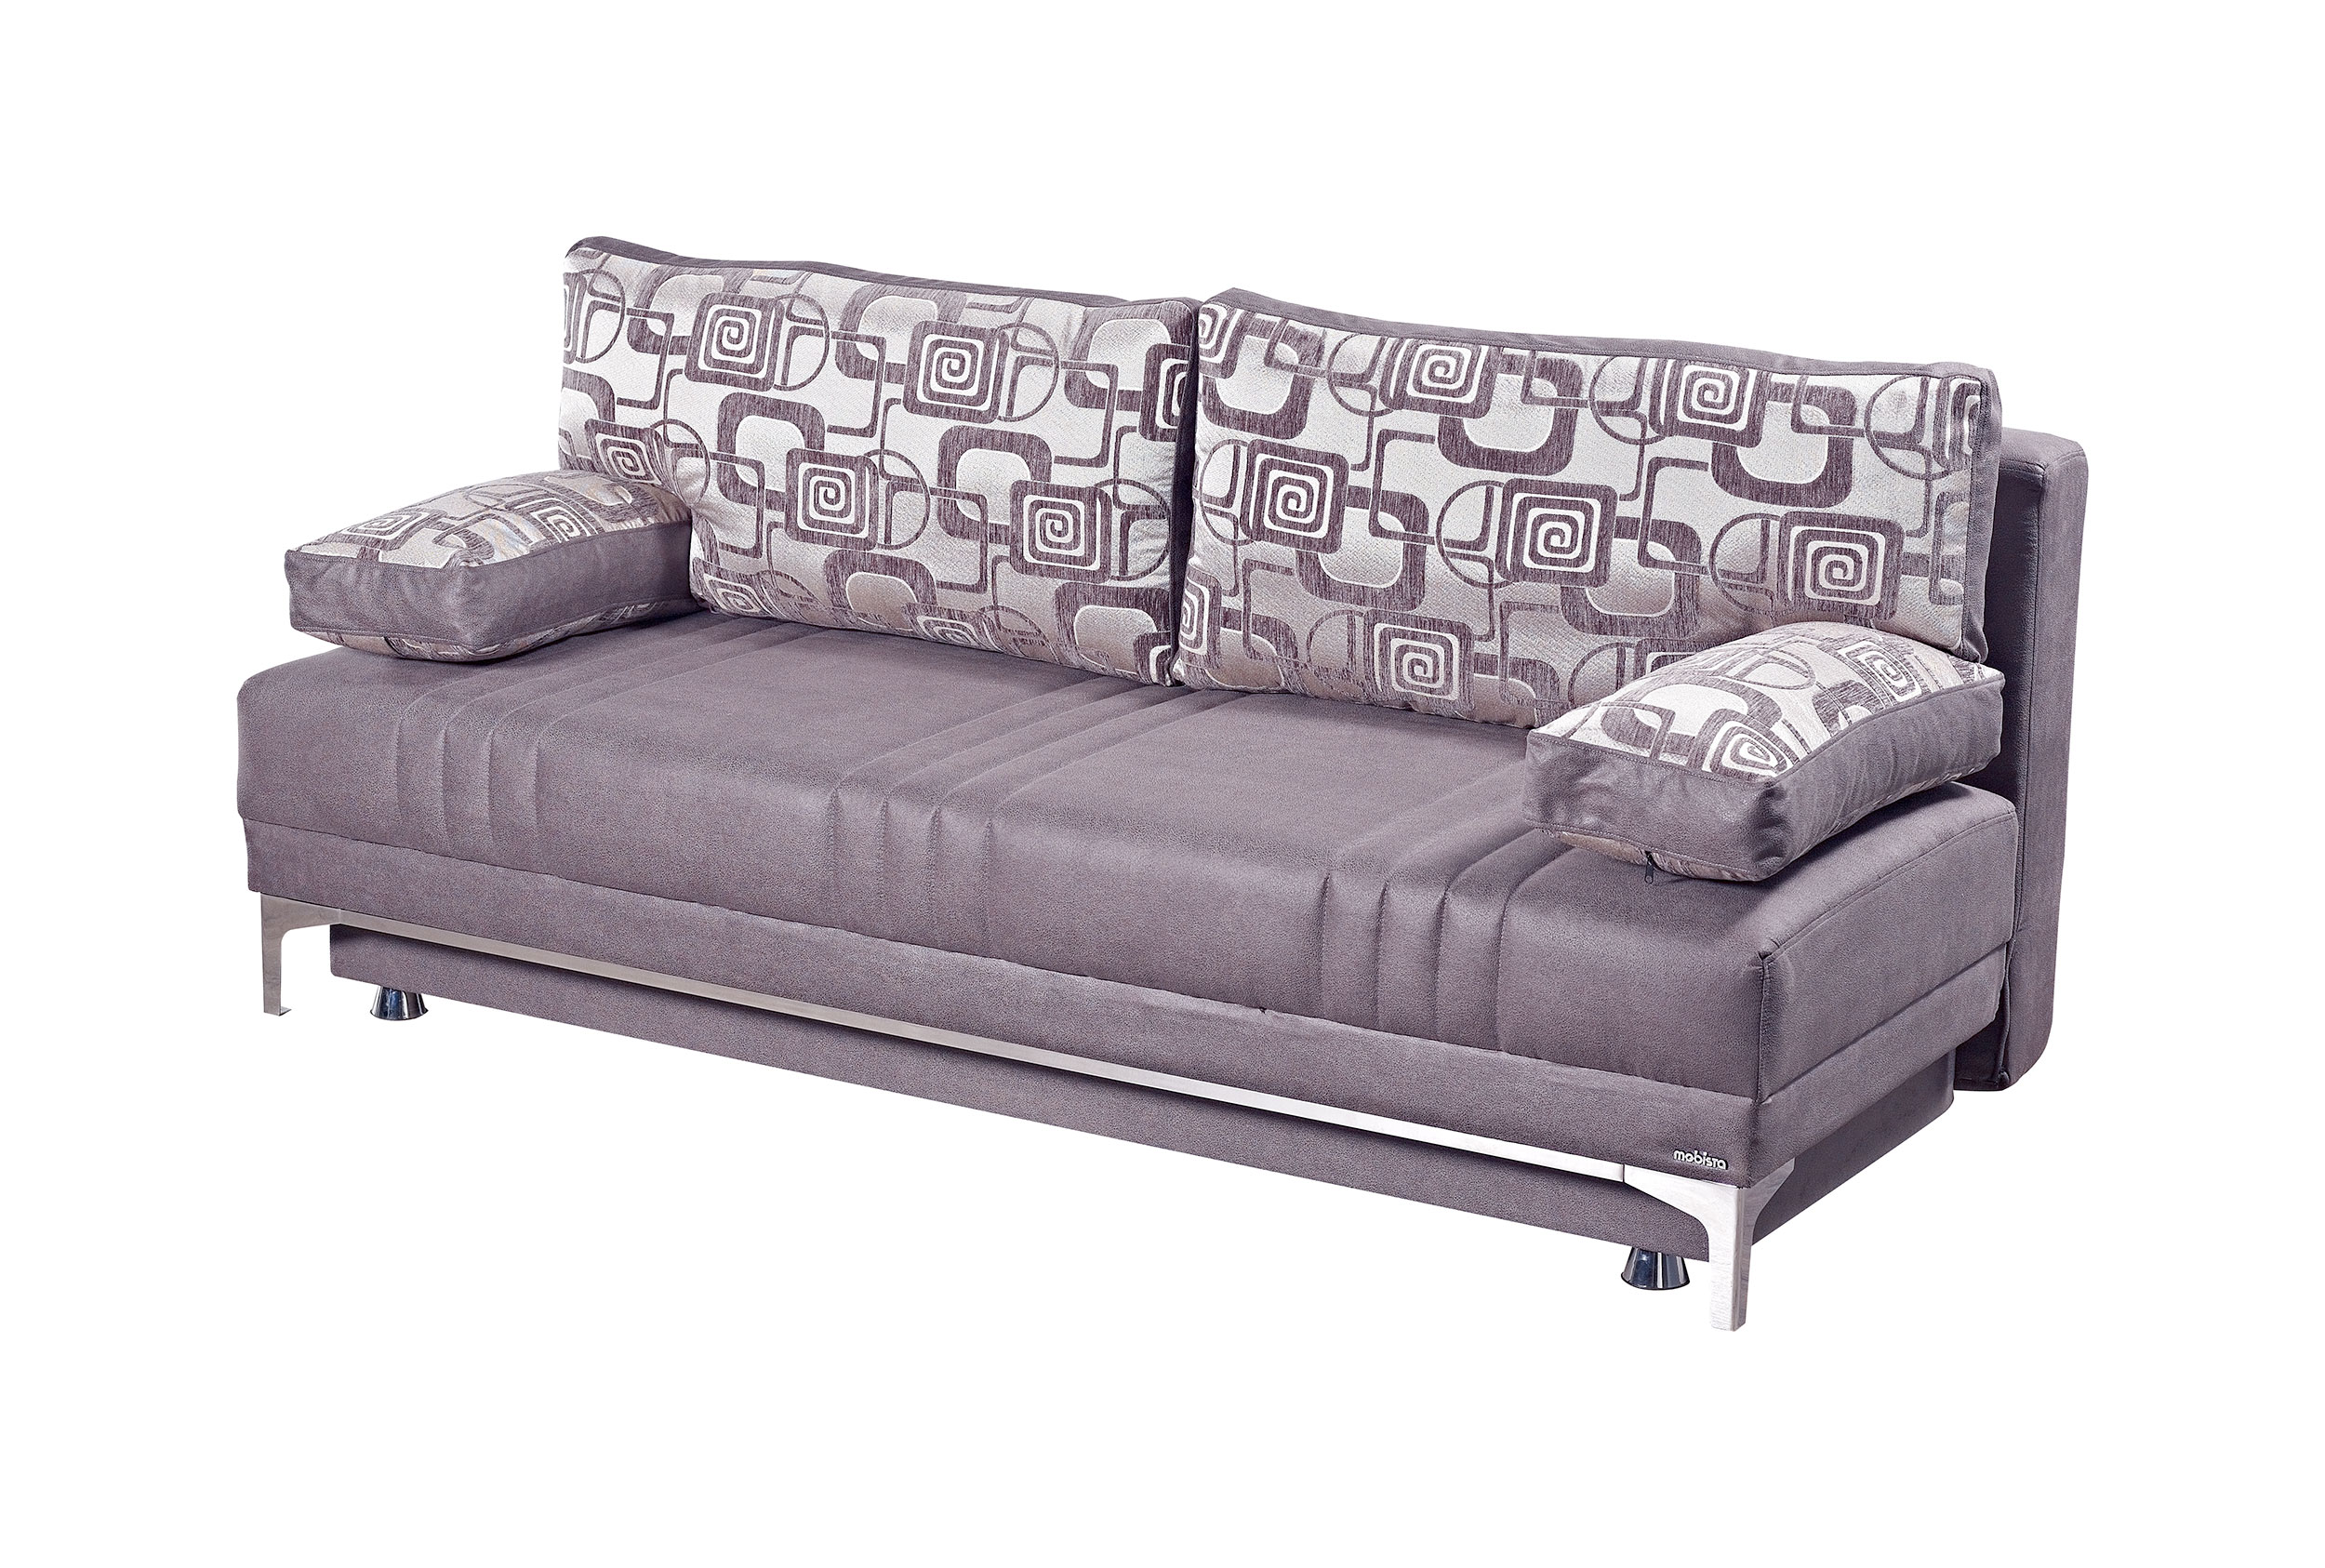 Europa Vintage Gray Queen Size Sofa Bed By Mobista